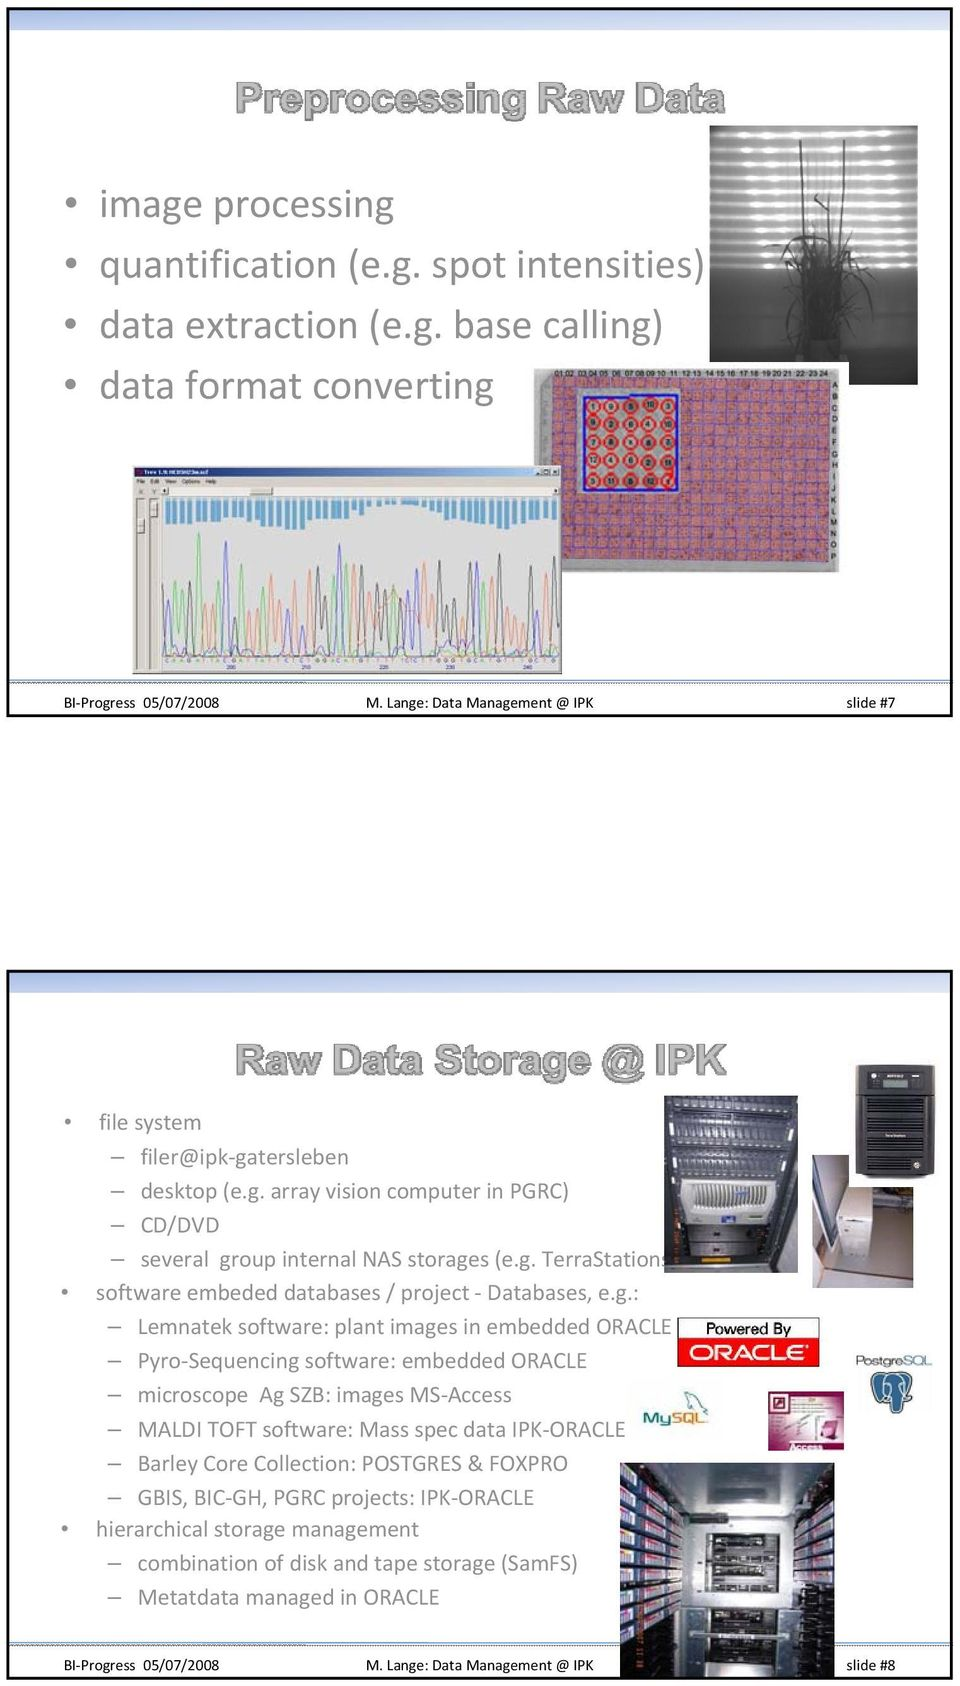 microscope Ag SZB: images MS Access MALDI TOFT software: Mass spec data IPK ORACLE Barley Core Collection: POSTGRES & FOXPRO GBIS, BIC GH, PGRC projects: IPK ORACLE